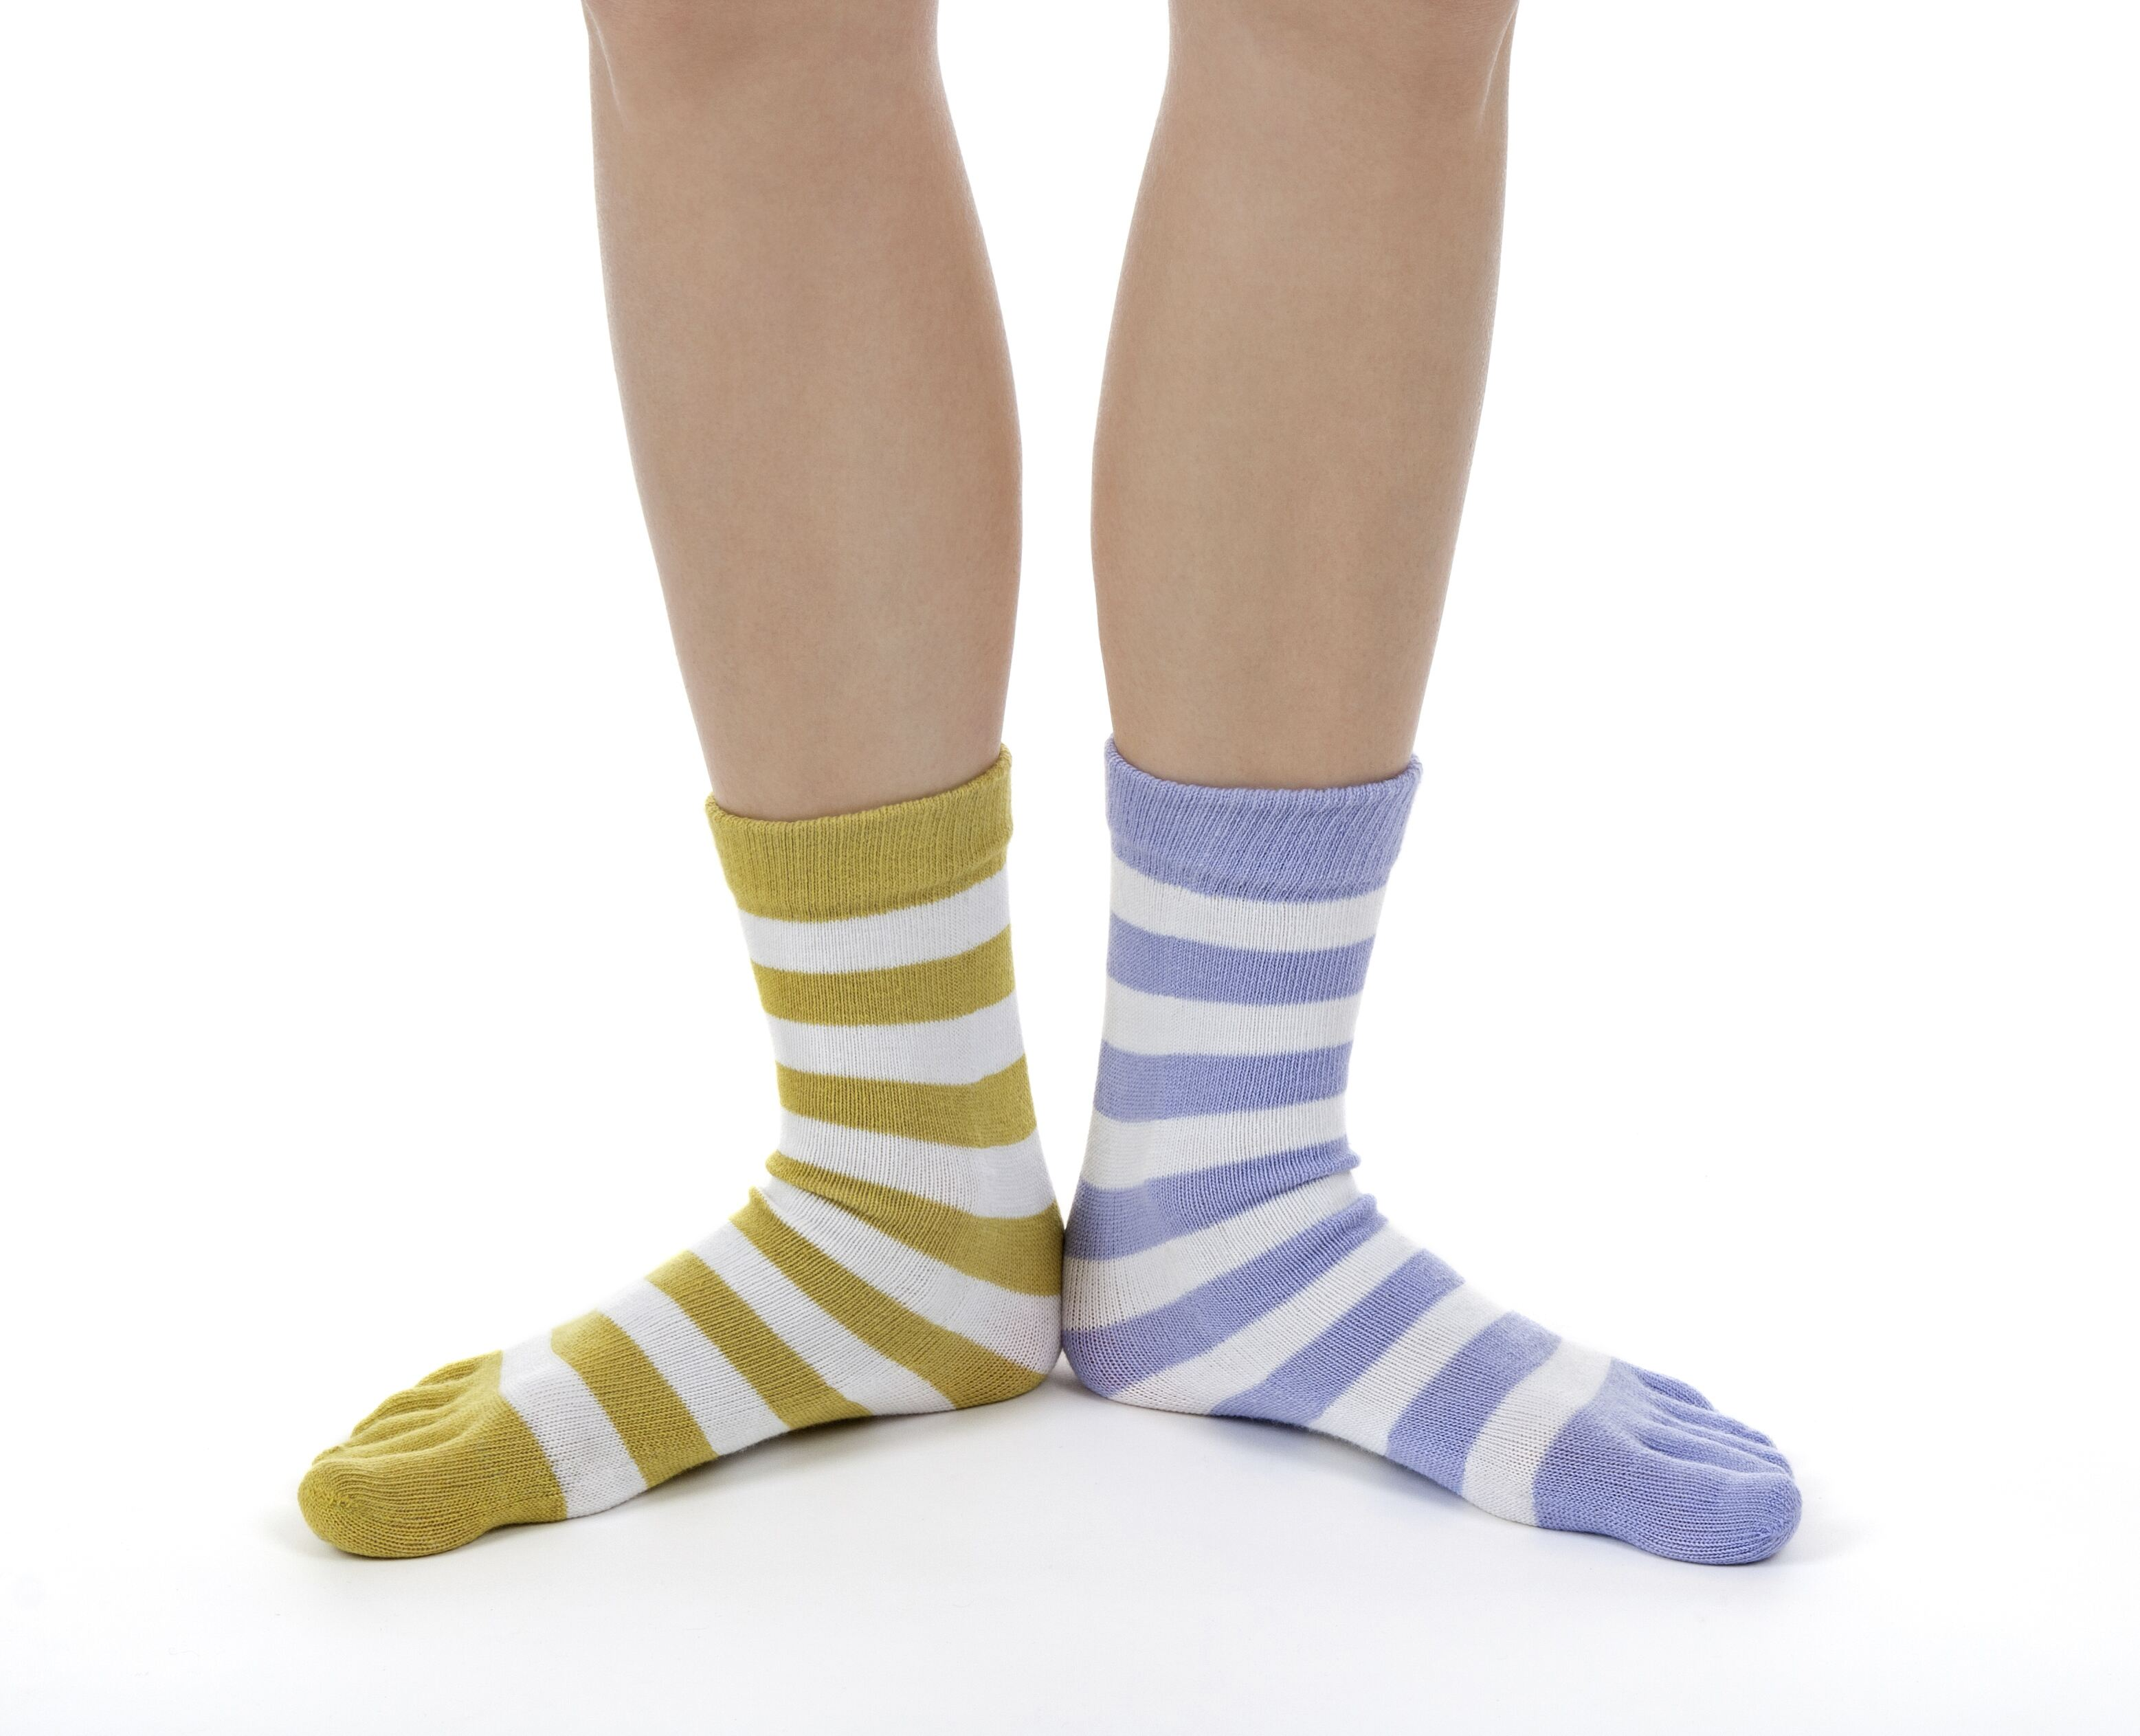 With these helpful tips and tricks, you'll no longer have to resort to odd socks...